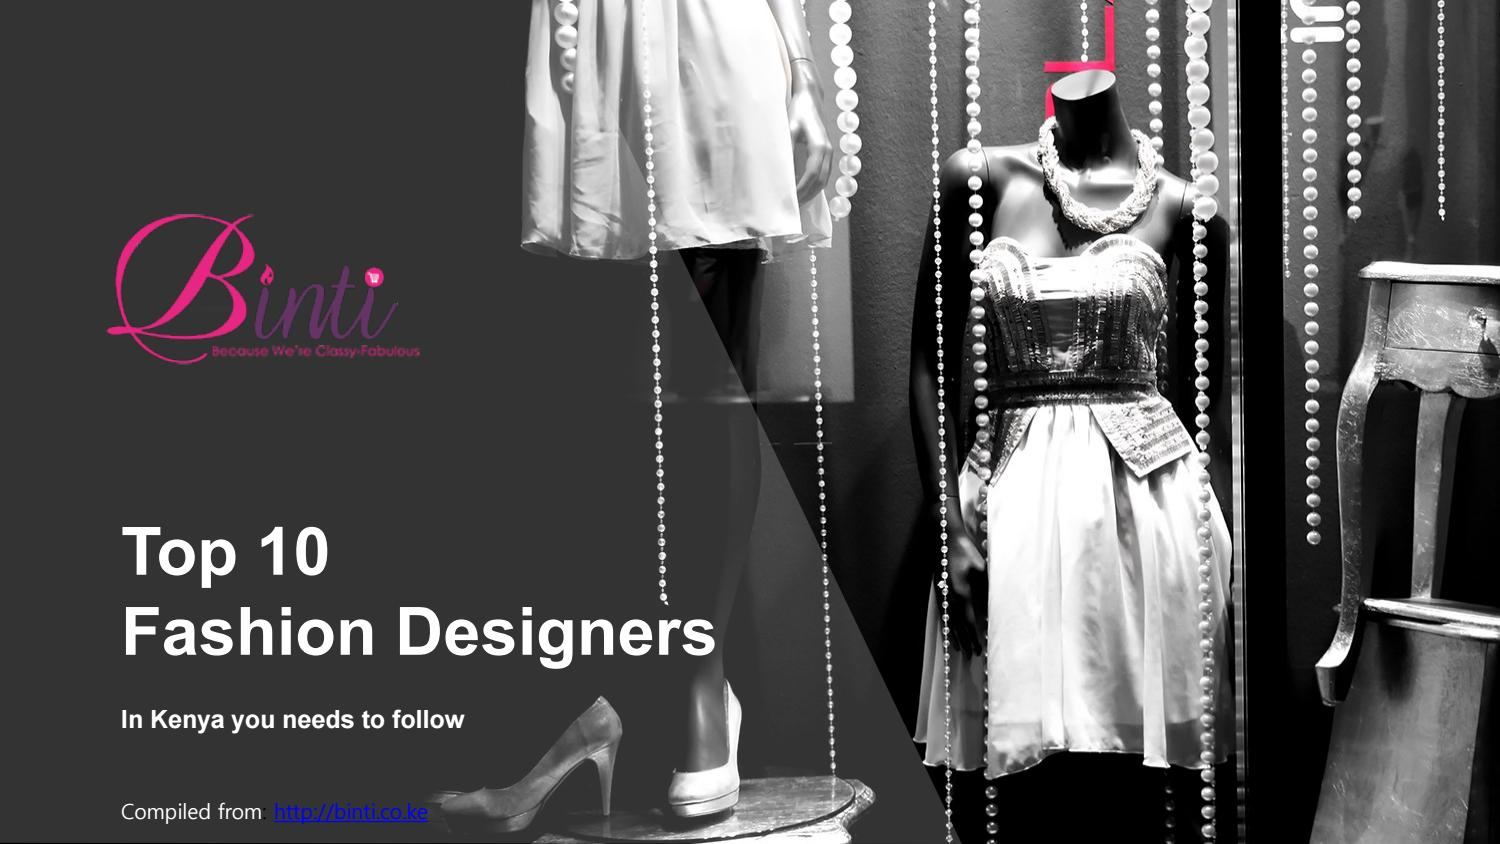 Top 10 Fashion Designers In Kenya You Need To Know By Daphne Milanoi Issuu